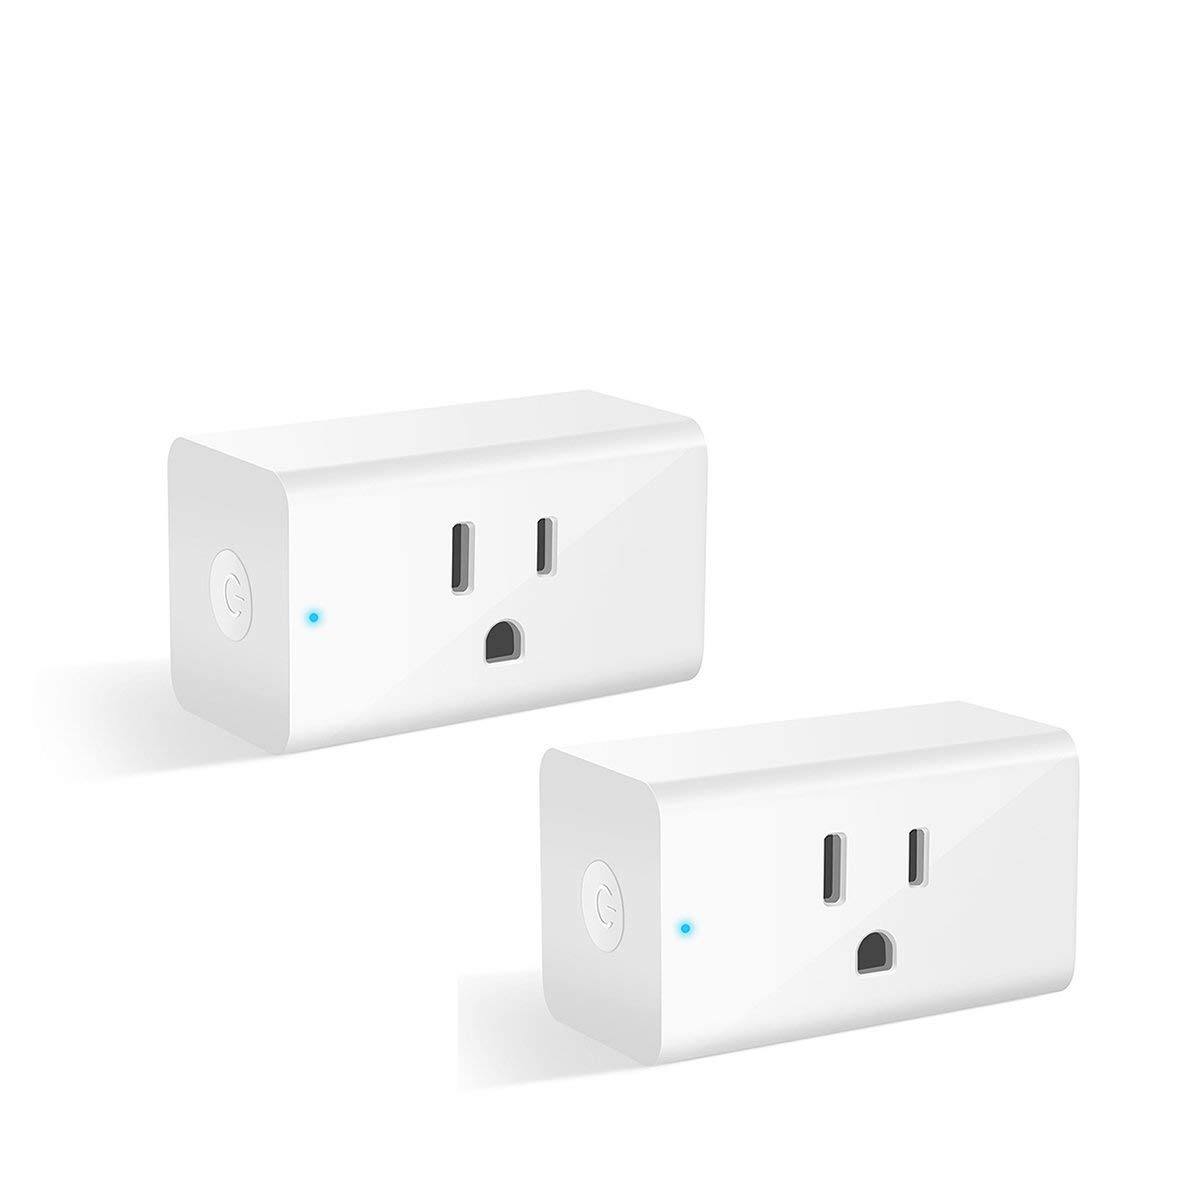 Smart Plug, Alexa Wifi Outlet Smart Plugs for Smart Home App Remote Control  Outlets (AC 110-125V/16A/1800W), No Hub Required Electrical Socket